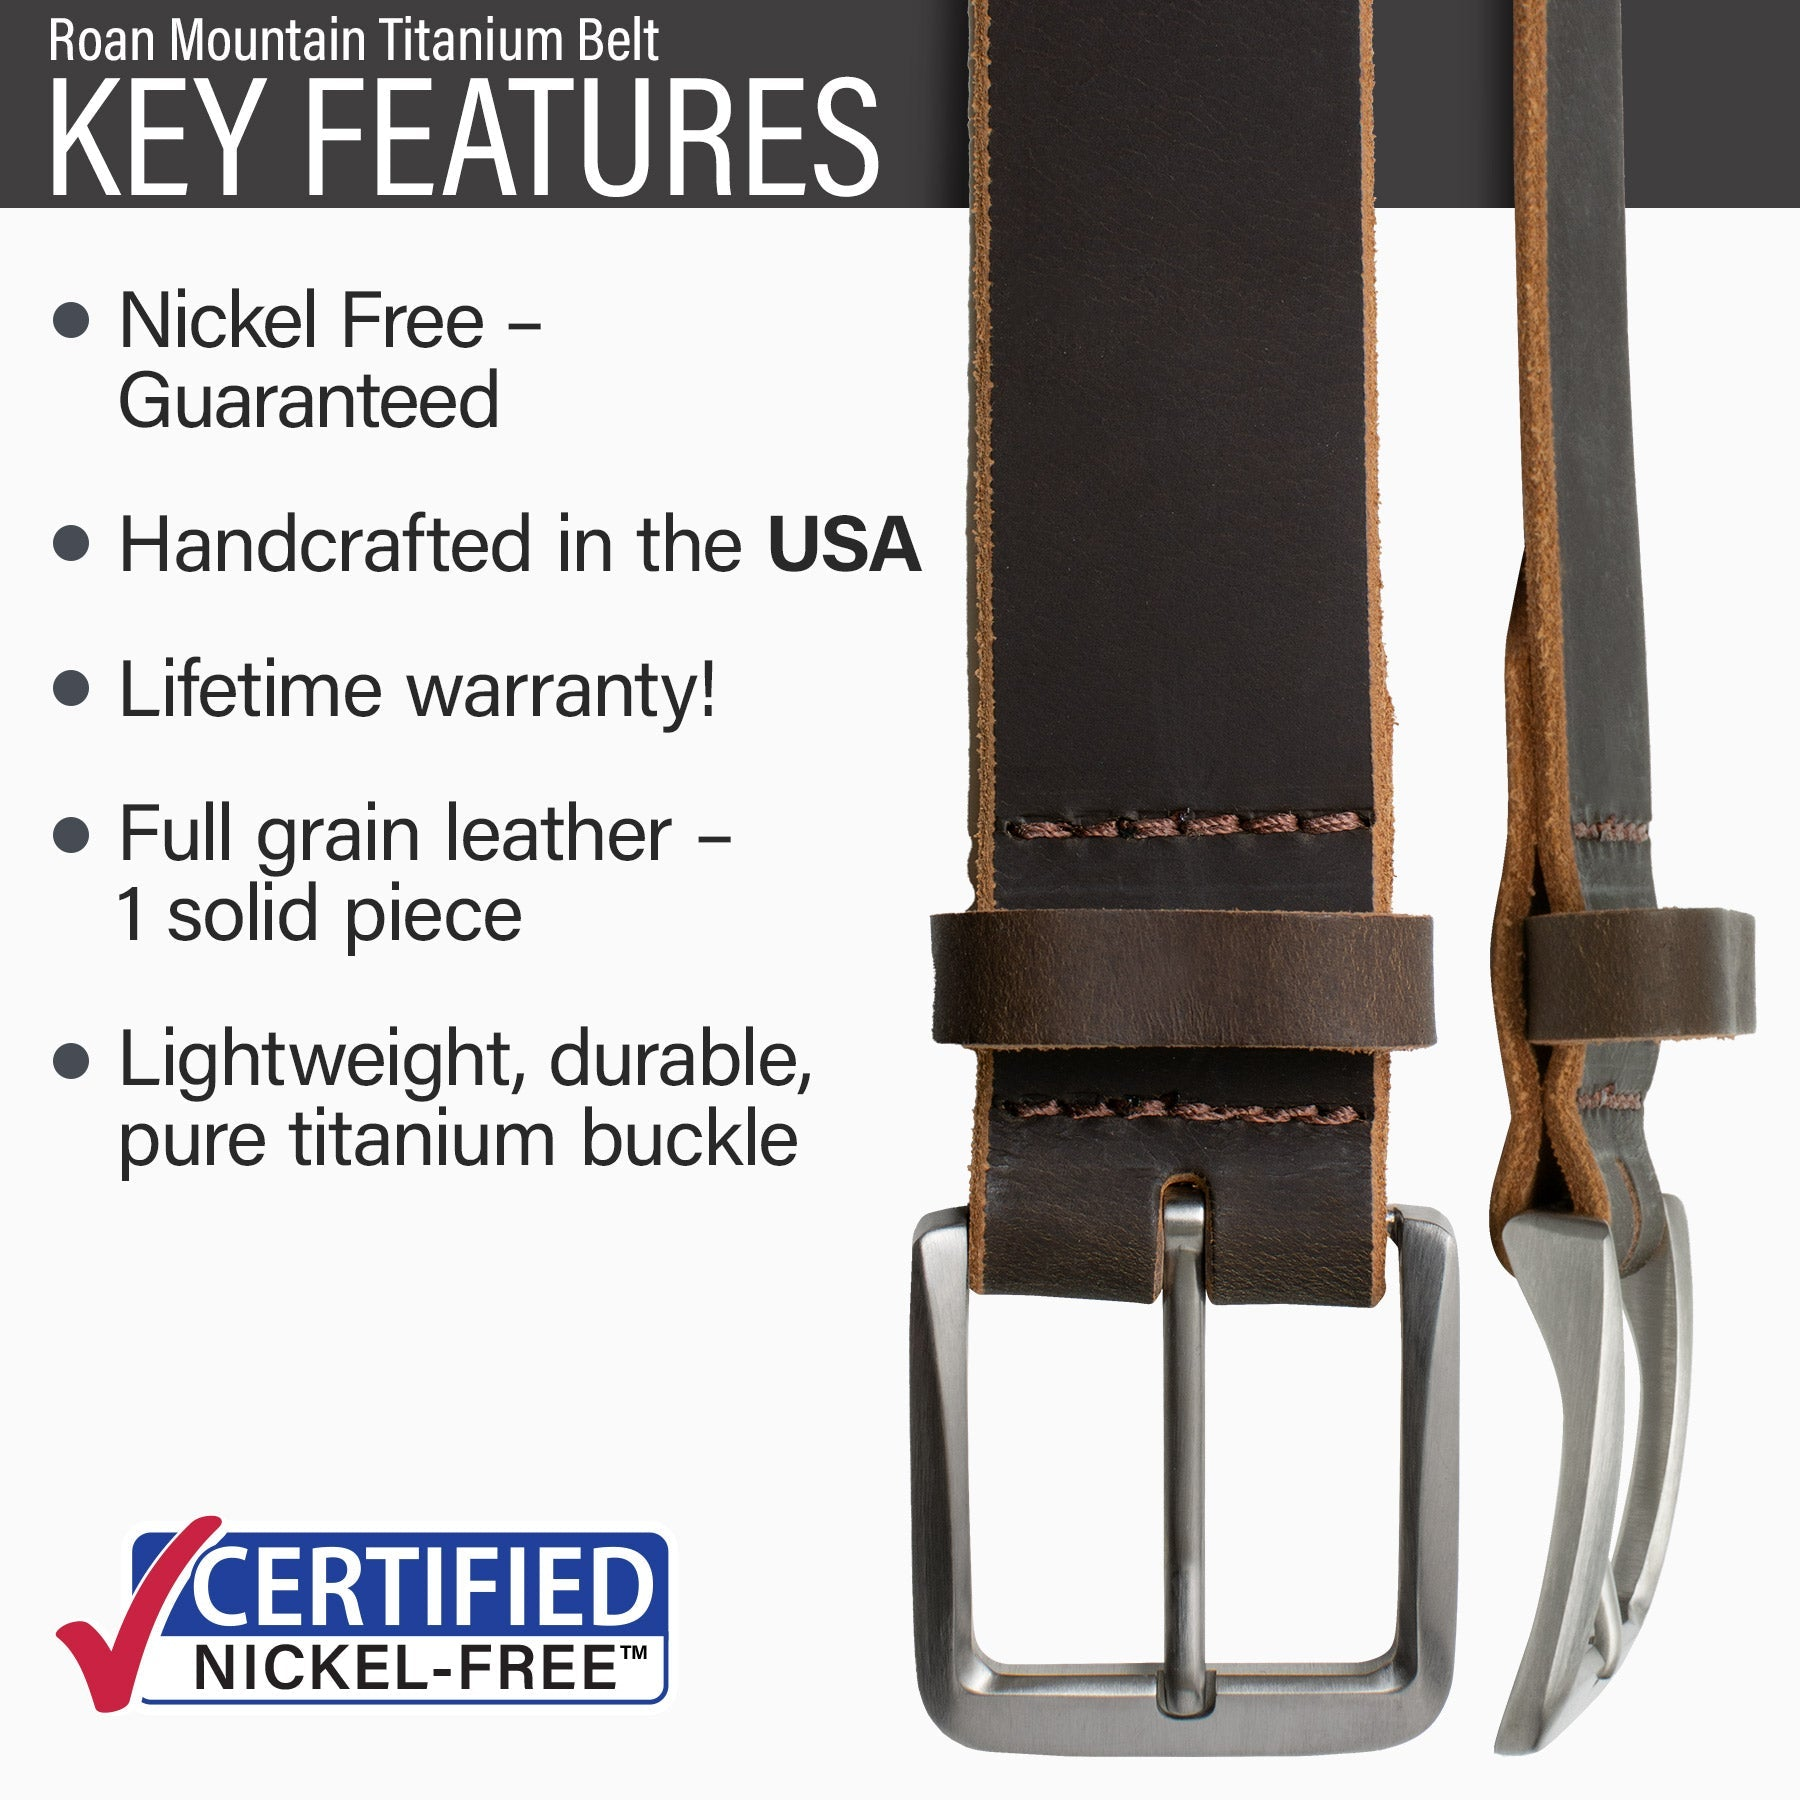 Key features of Roan Mountain Titanium Nickel Free Brown Leather Belt | Hypoallergenic buckle made from lightweight durable pure titanium, handmade in the USA, lifetime warranty, stitched on nickel-free buckle, full grain leather